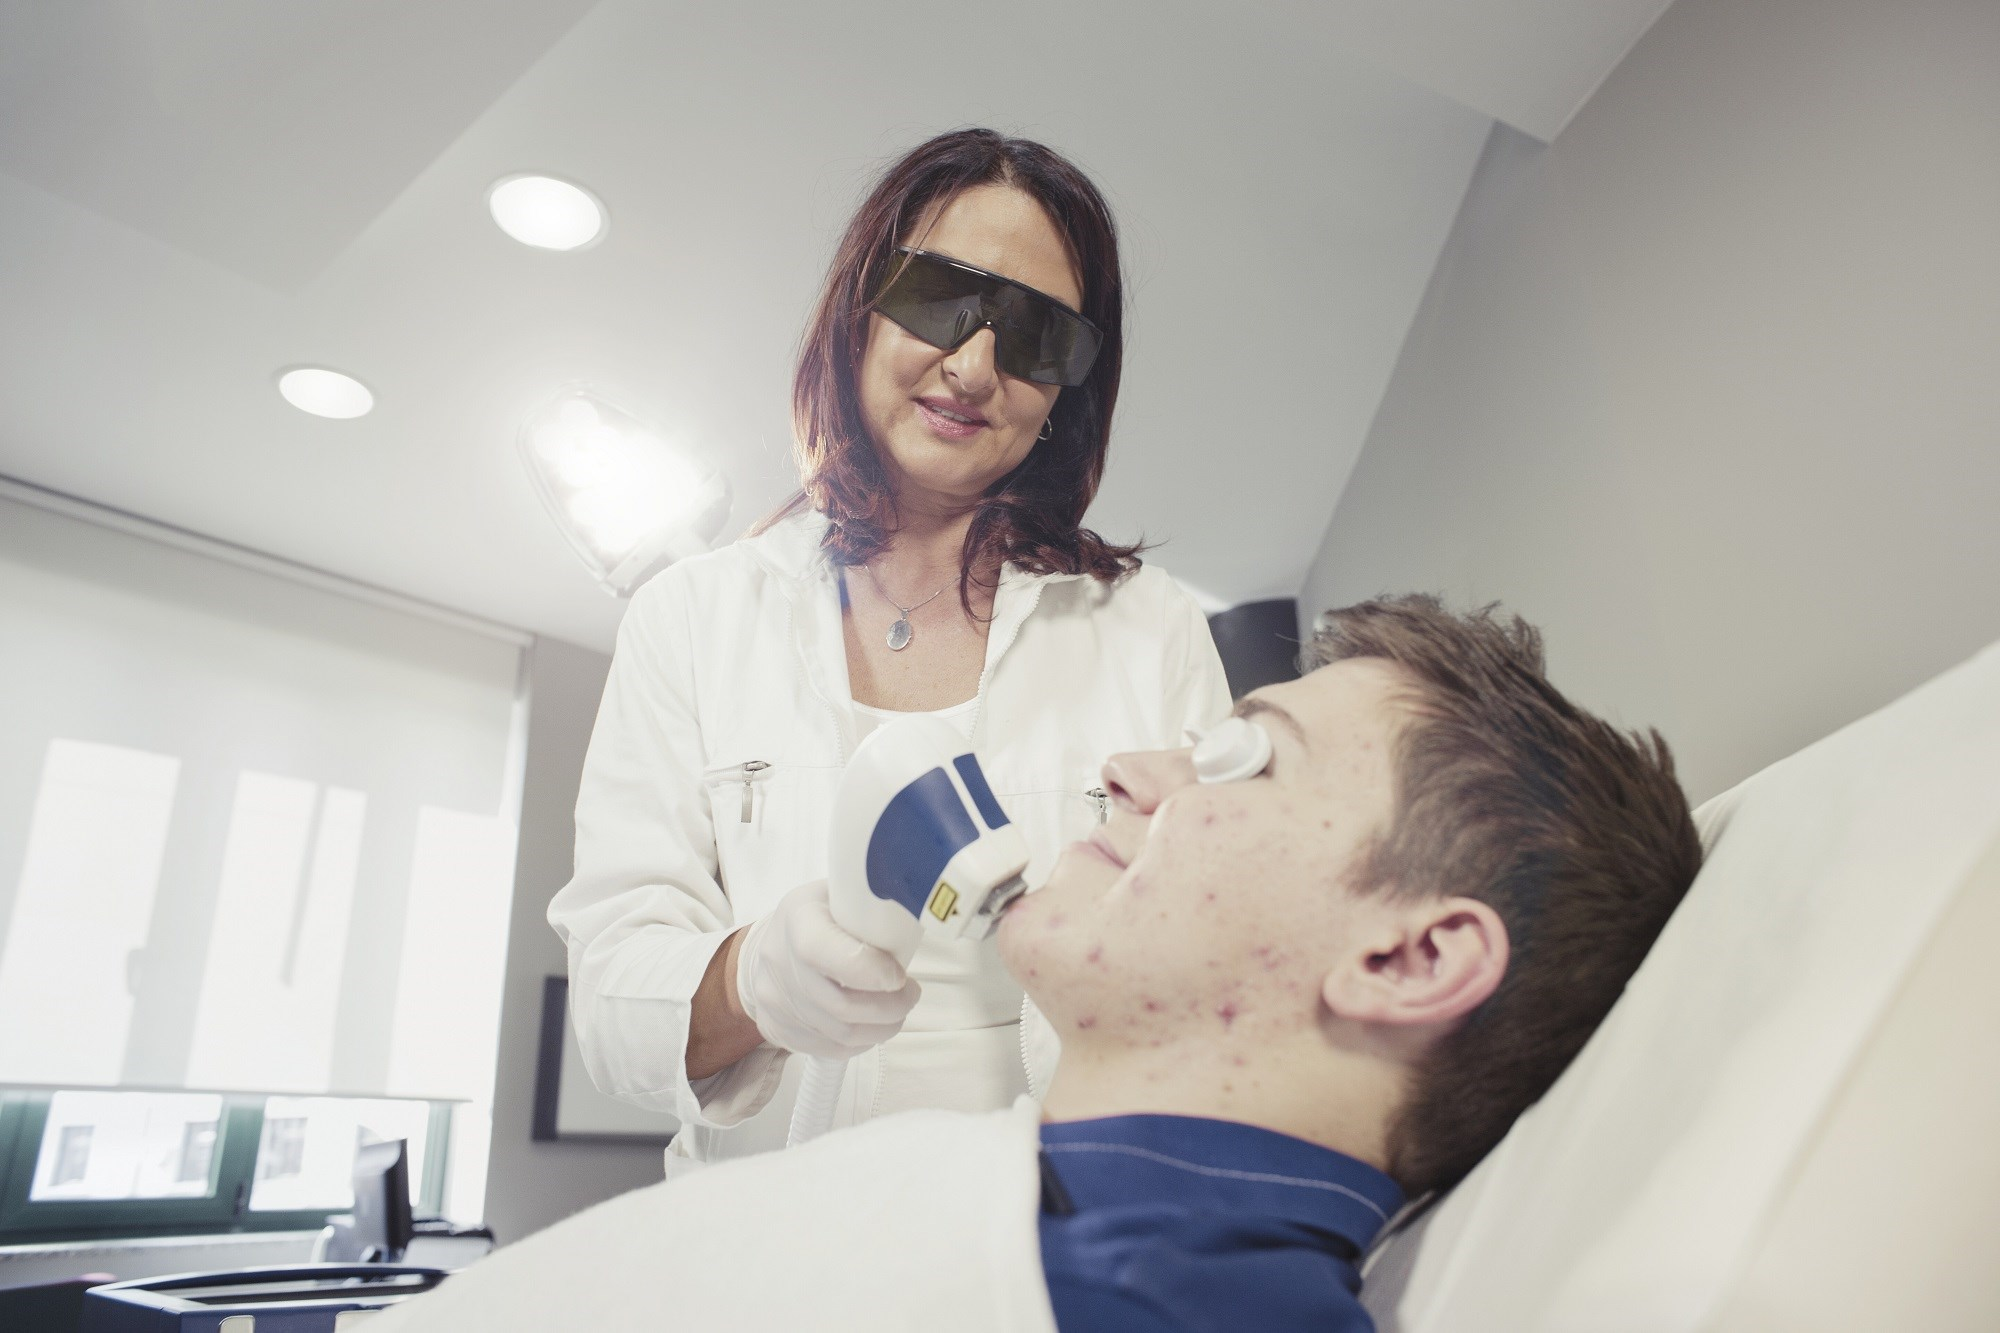 Combination YAG Laser Therapy Provides Effective, Sustained Acne Treatment